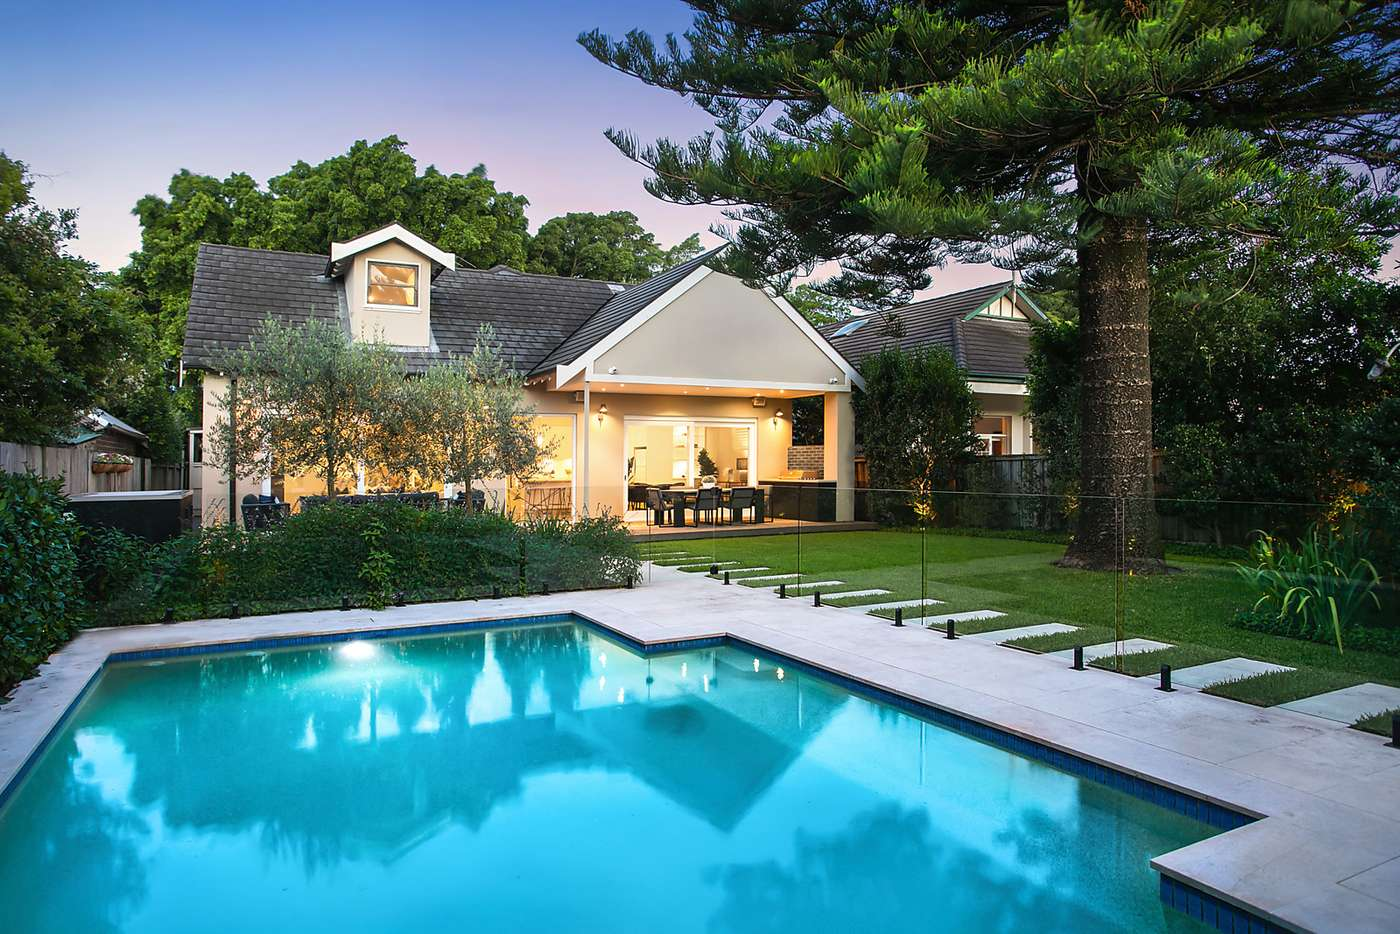 Main view of Homely house listing, 27 Milroy Avenue, Kensington NSW 2033